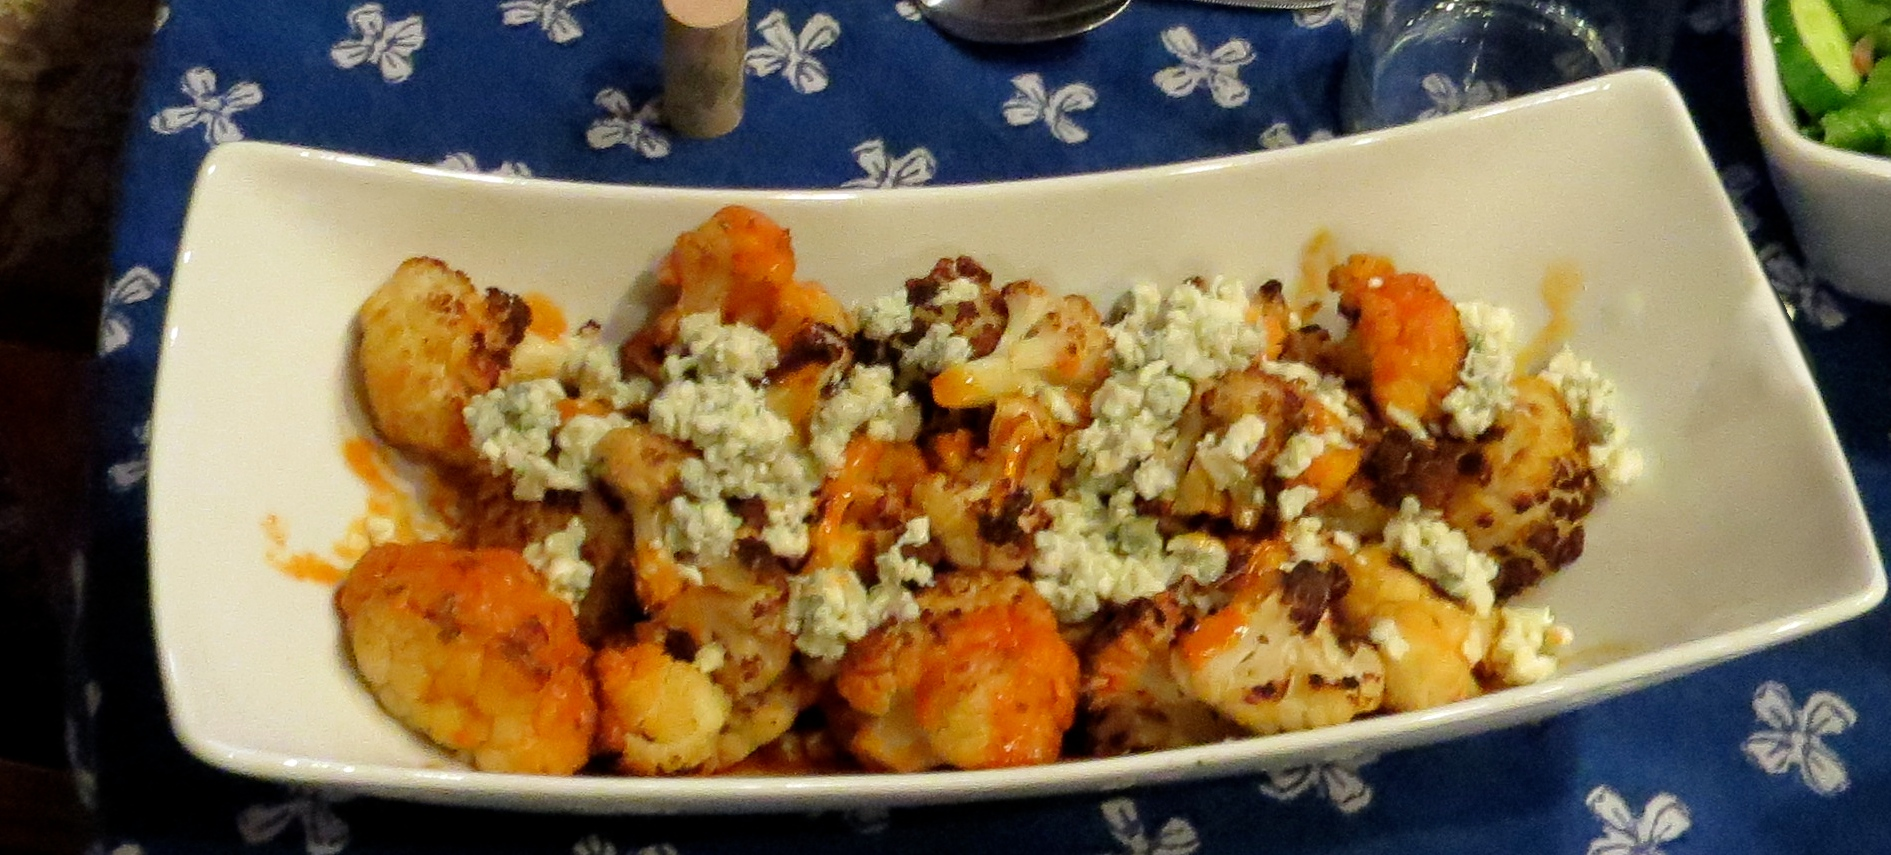 roasted cauliflower with blue cheese hot sauce dressing